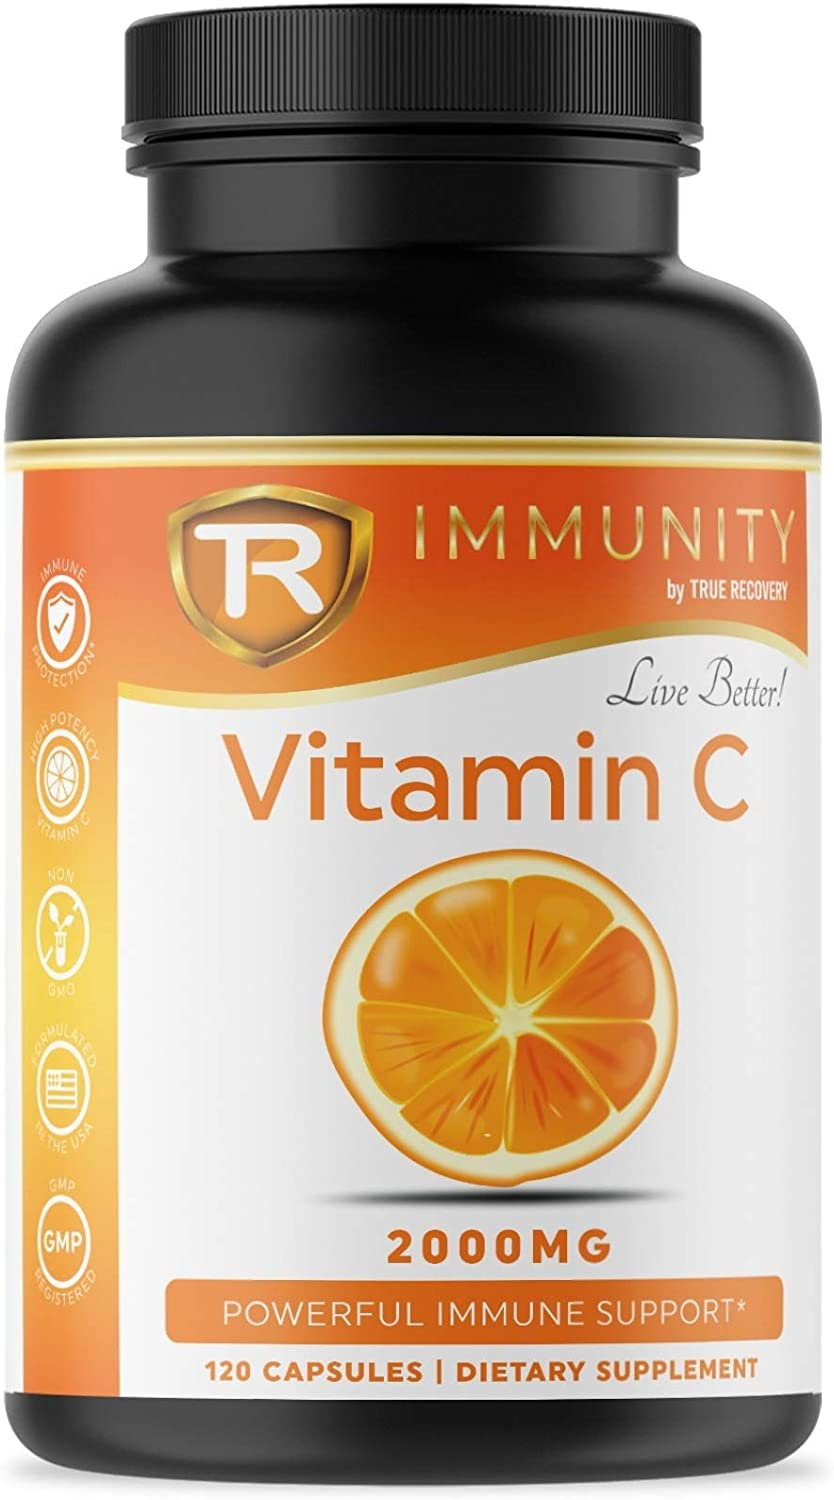 Vitamin C 2000mg - Powerful Immune System Protection with Potent Antioxidants and High Absorption Ascorbic Acid Vitamin C - 120 Immune Defense Capsules